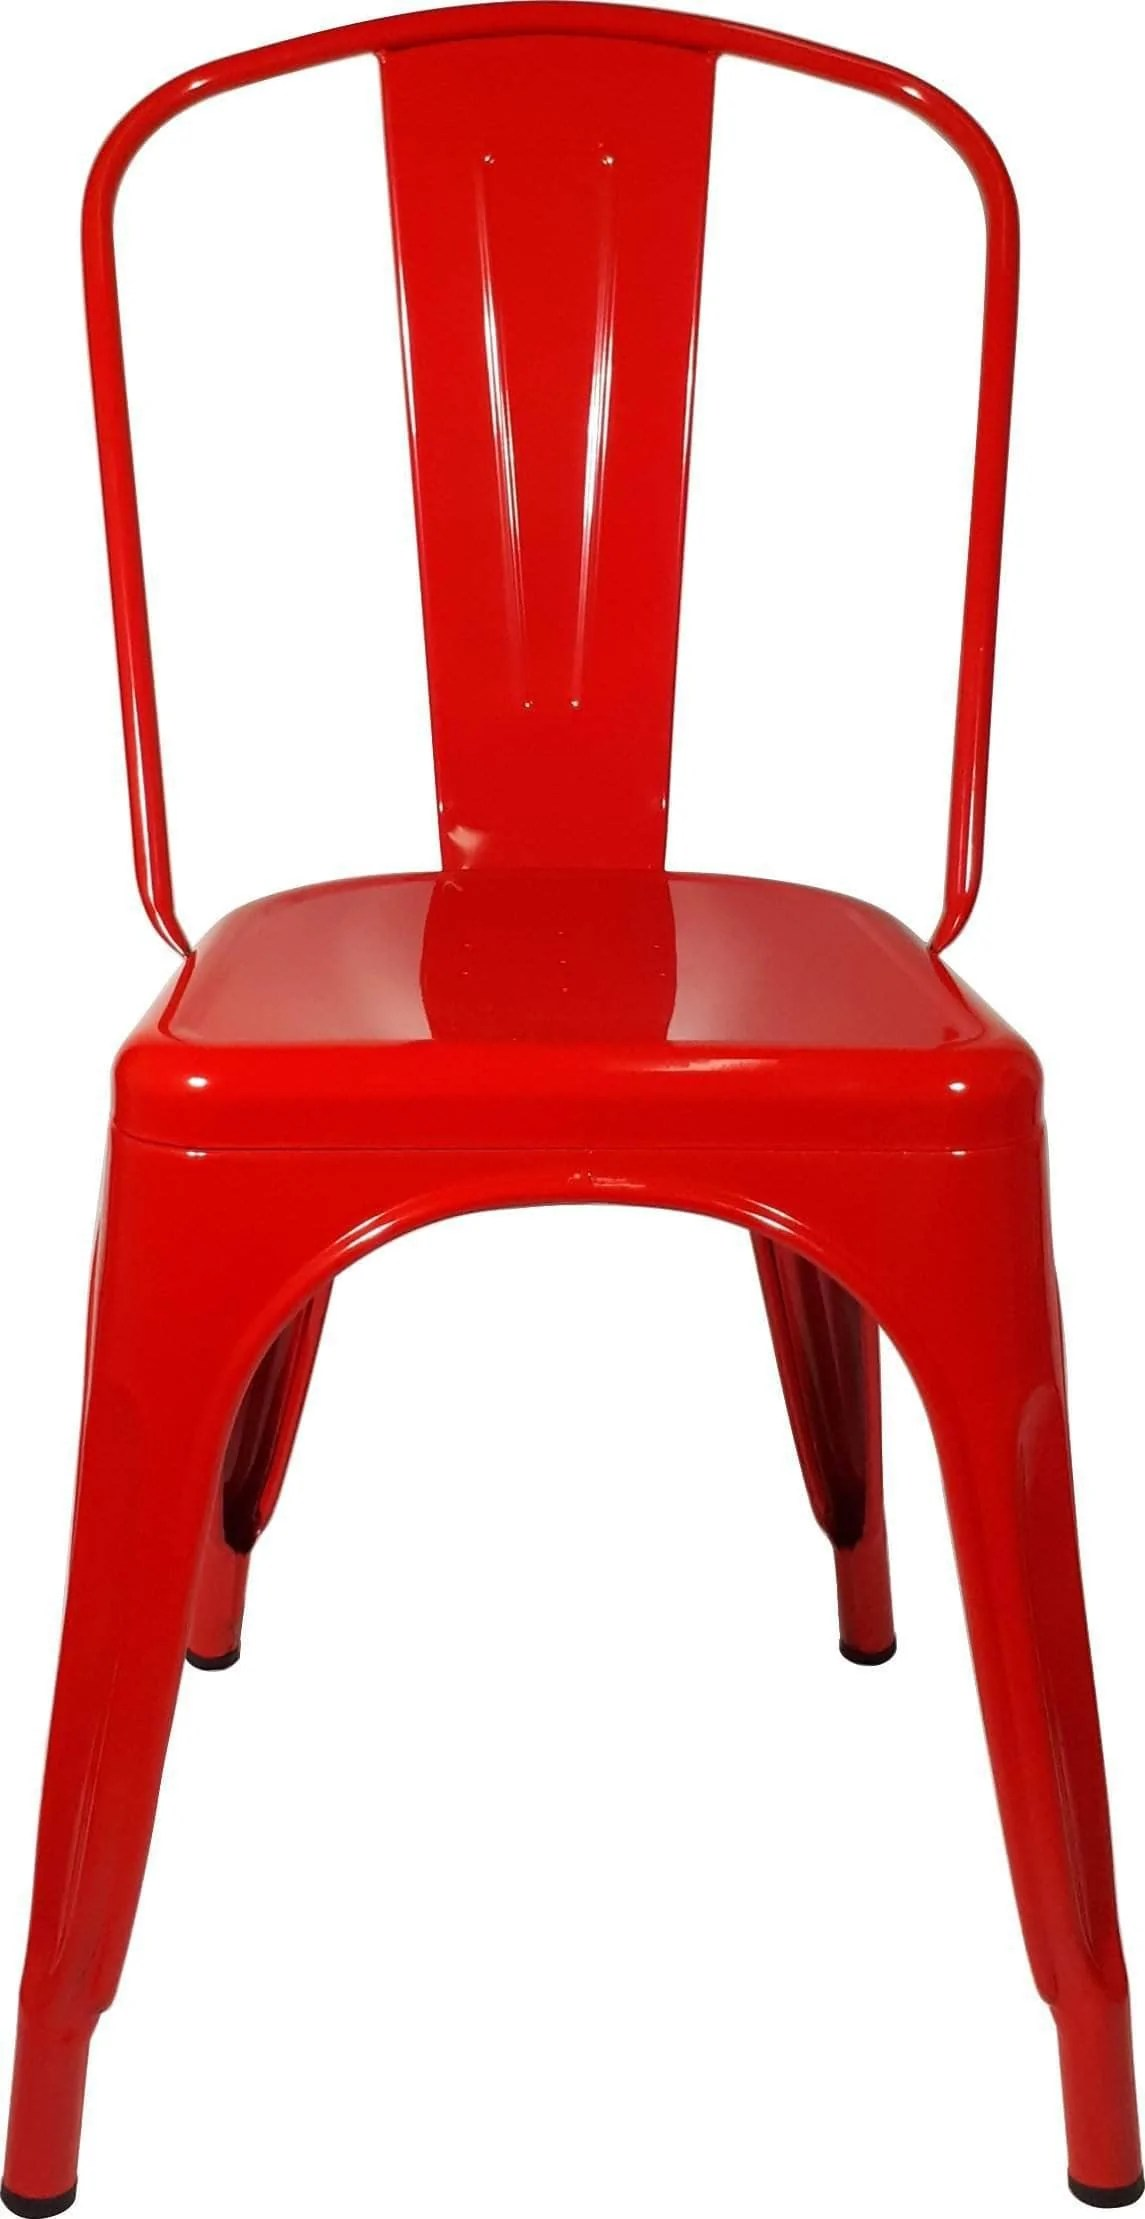 Egg Chair Perth Red Replica Tolix Cafe Chair With High Back Perth Only